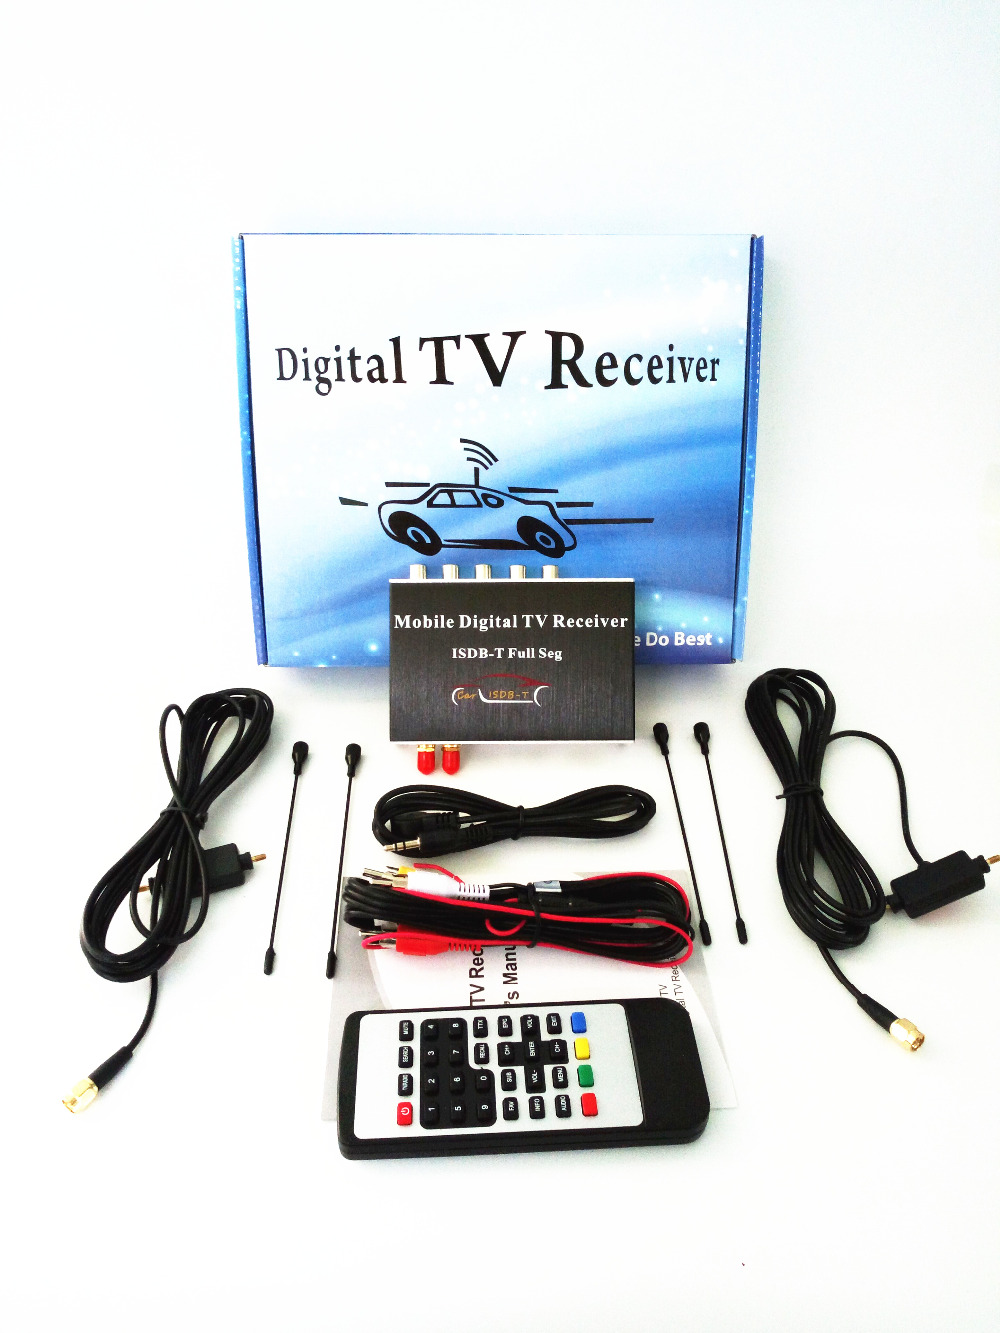 140-190km/h Double Antenna ISDB-T Full Seg Mobile Digital TV Box Car TV Receiver  For Brazil Chile Argentina Peru Japan tv031 brazil standard hd isdb t car digital receiver silver